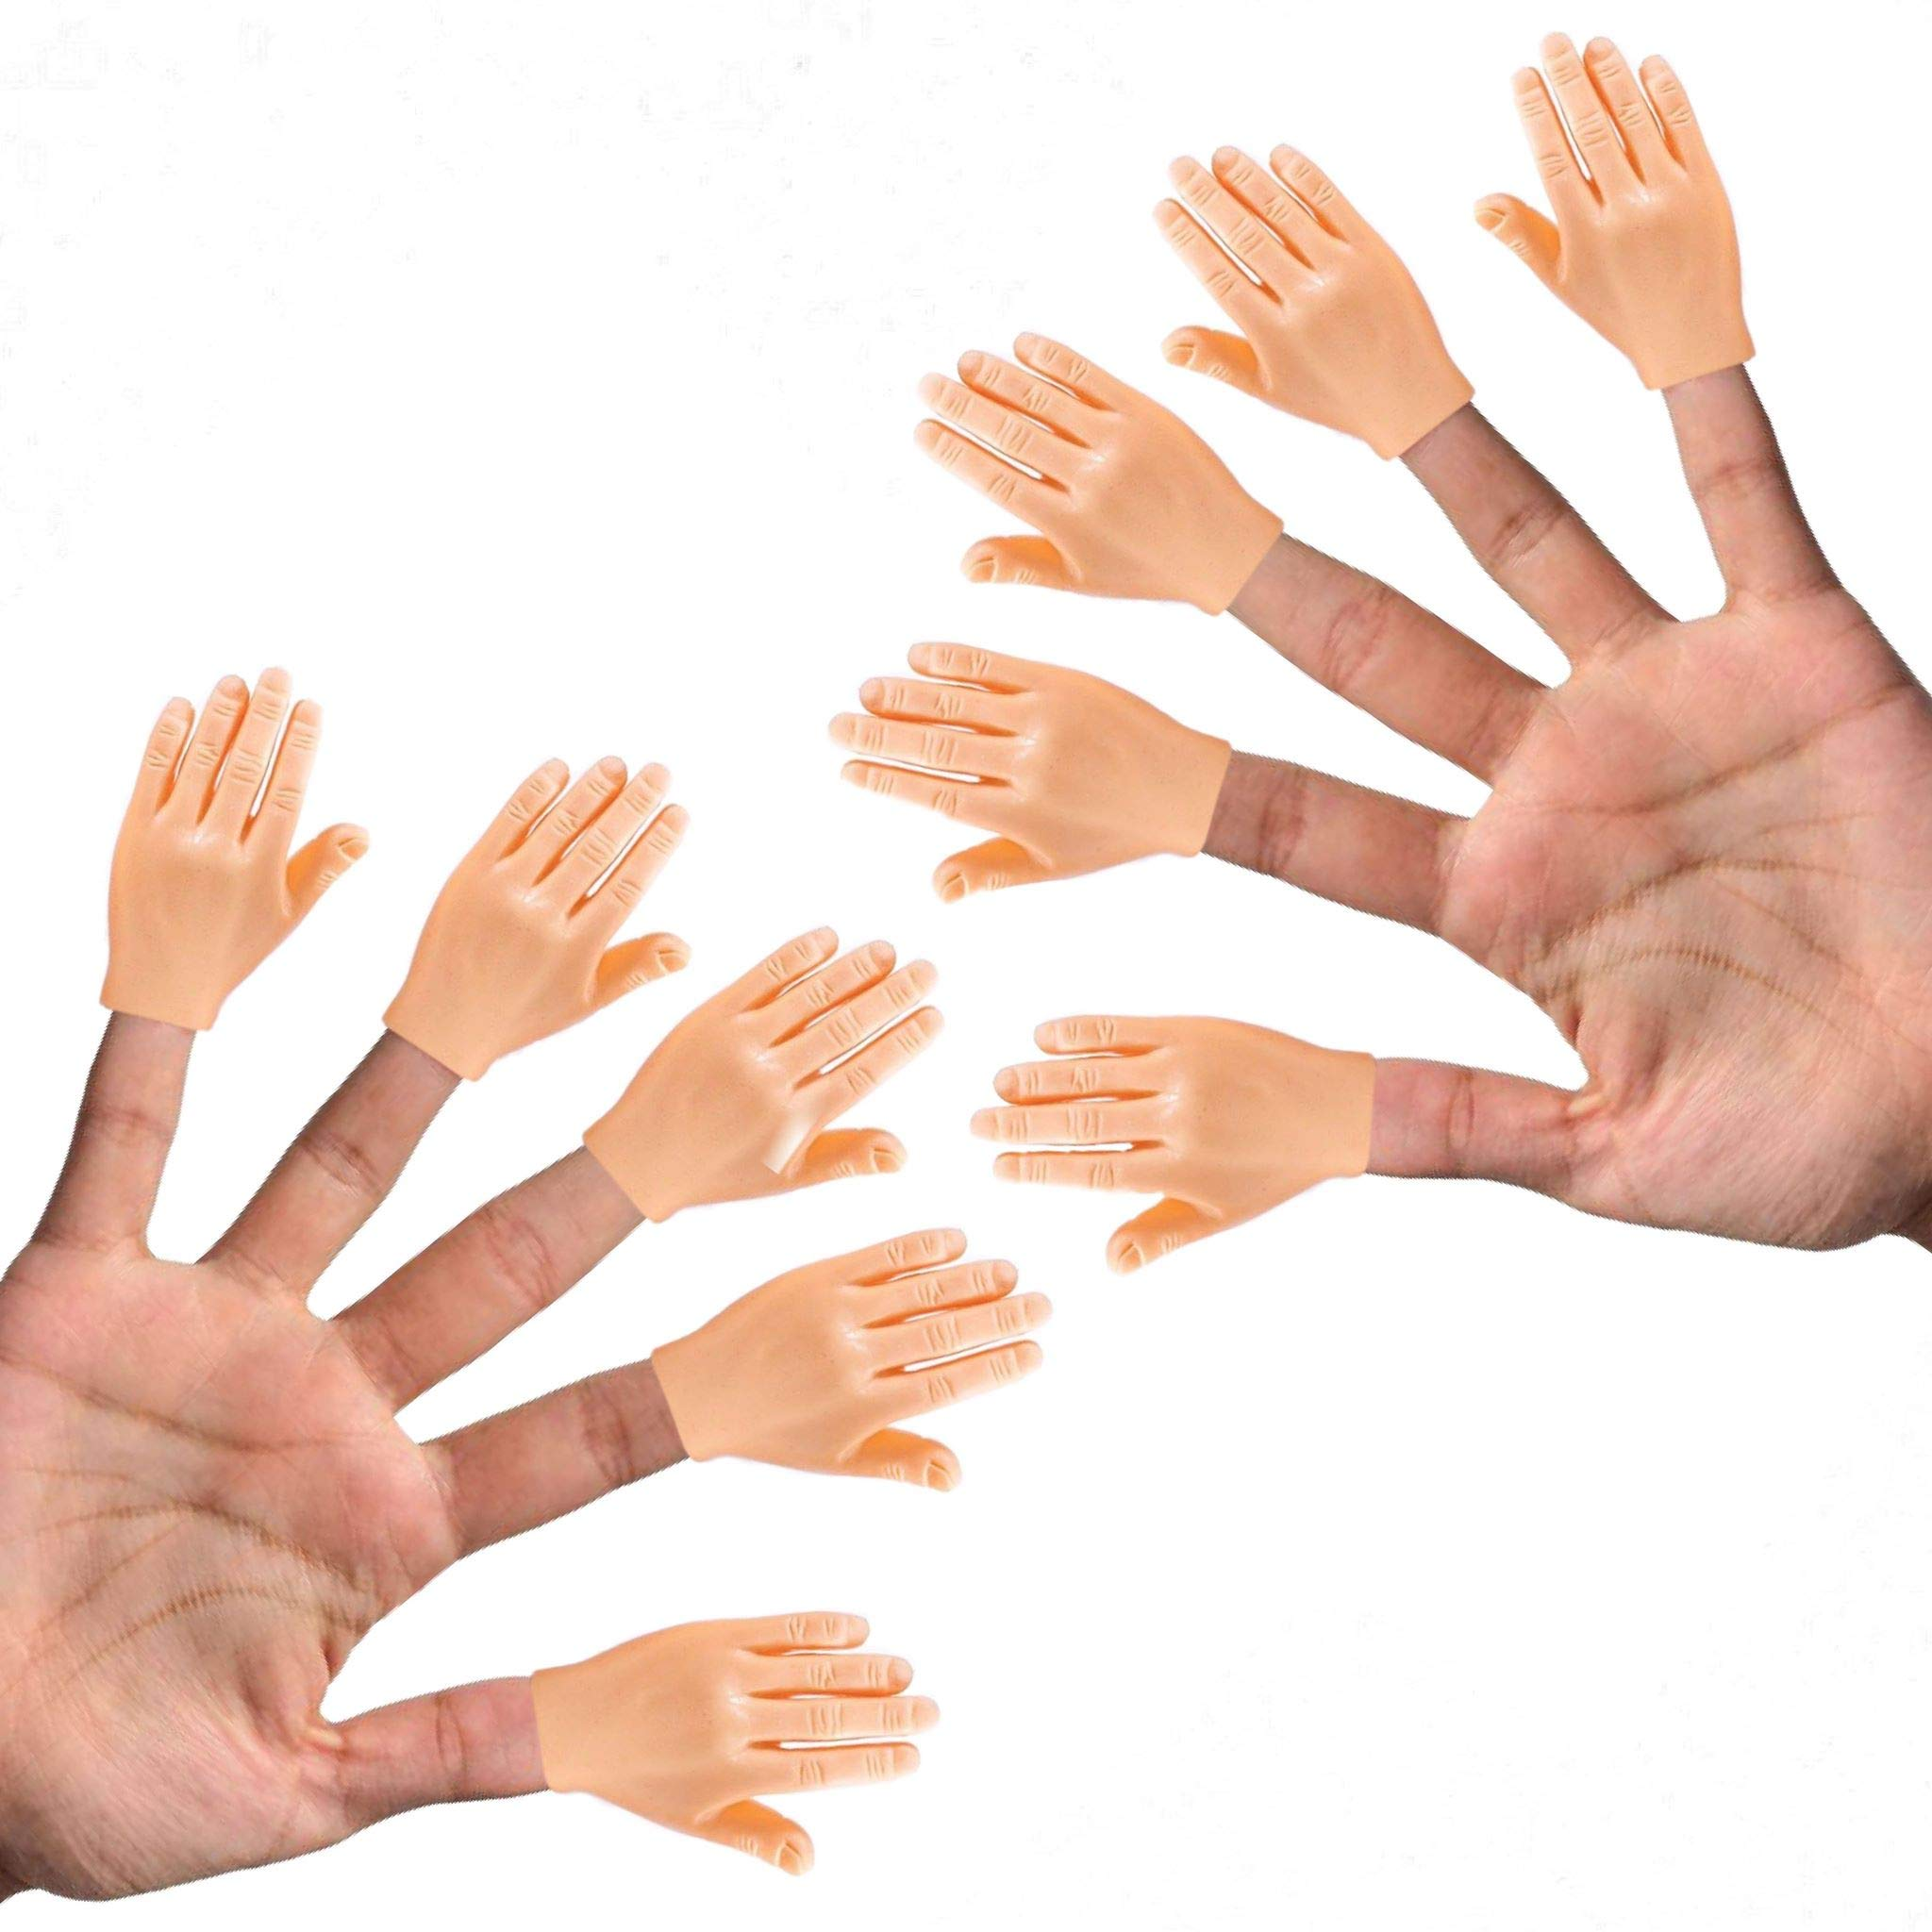 Daily Portable Tiny Hands (High Five) 10 Pack- Flat Hand Style Mini Hand Puppet - 5 Left & 5 Right Hands